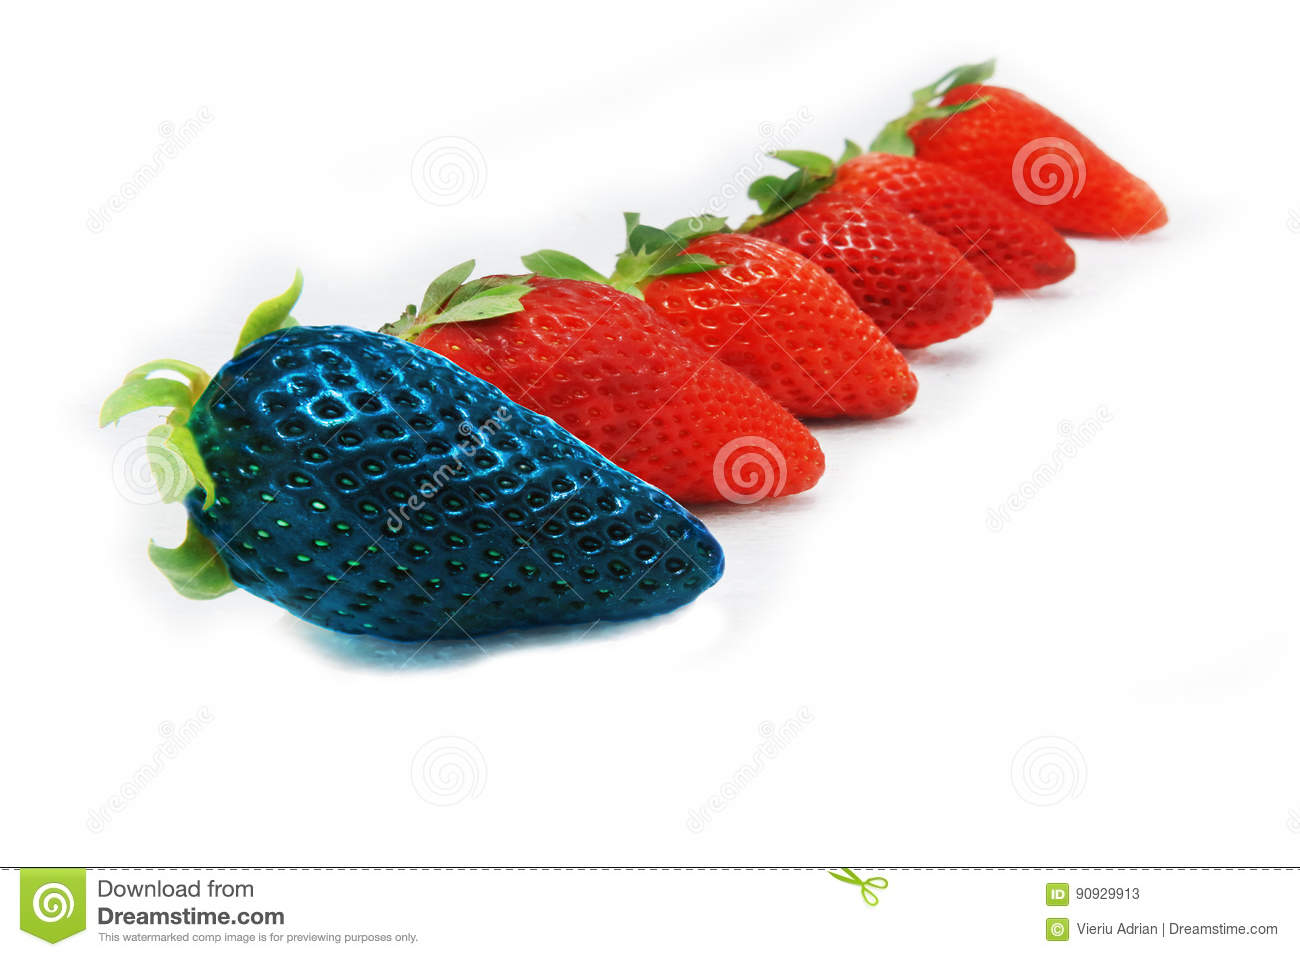 Differente che la fragola blu sola di resto Concetto per alimento geneticamente modificato